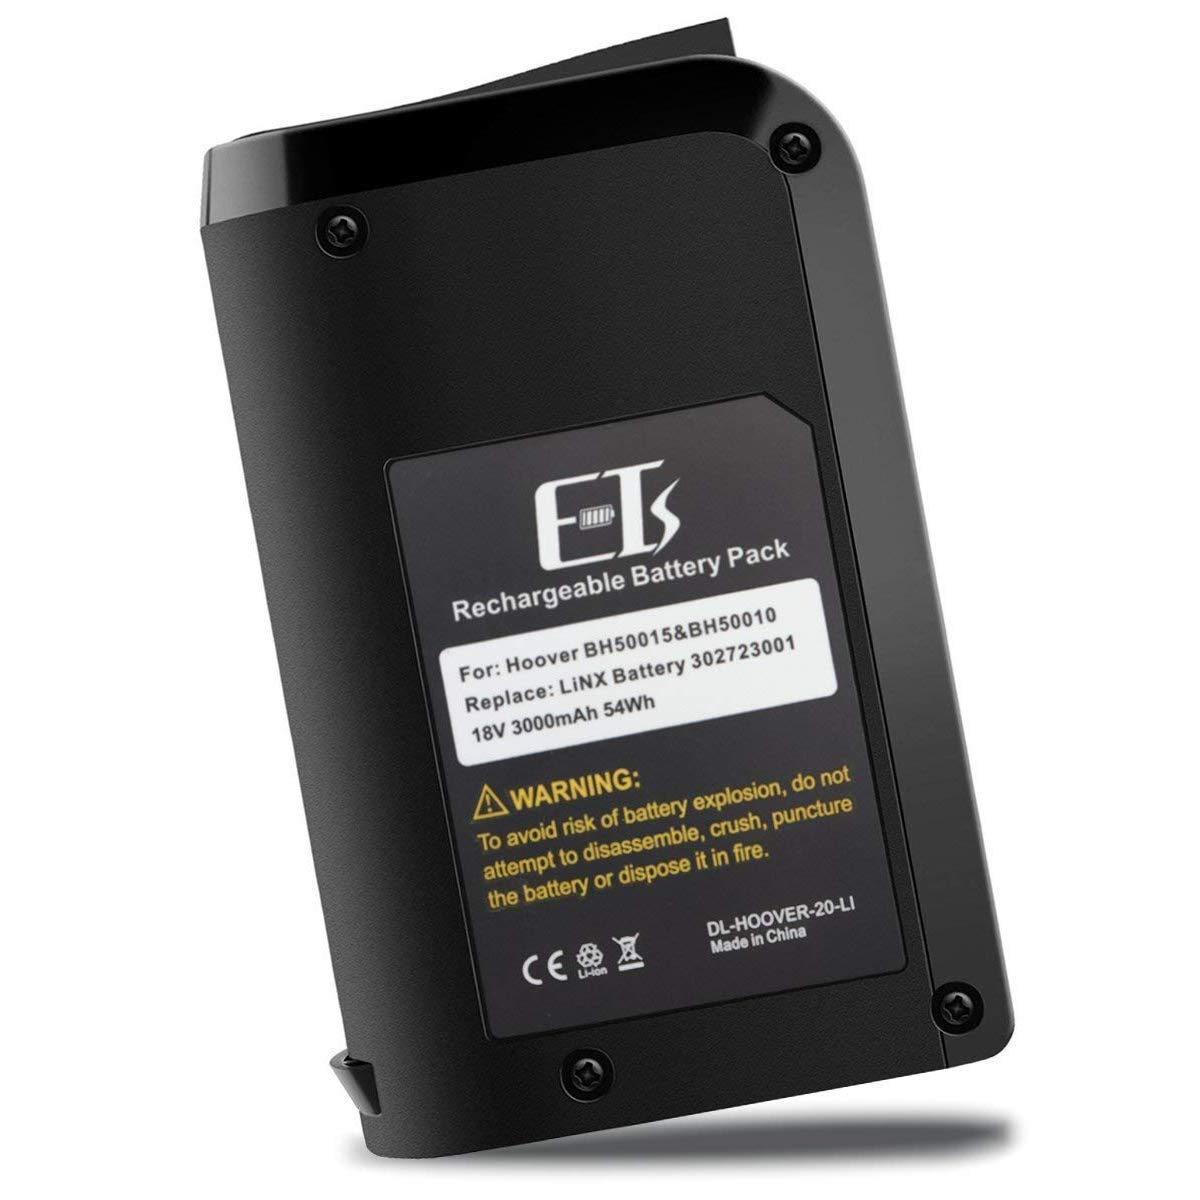 E-TS Upgraded 3000mAh Hoover 18V Battery Replacement Hoover Battery Compatible with Hoover Battery BH50010 & BH50015 Series Vacuums